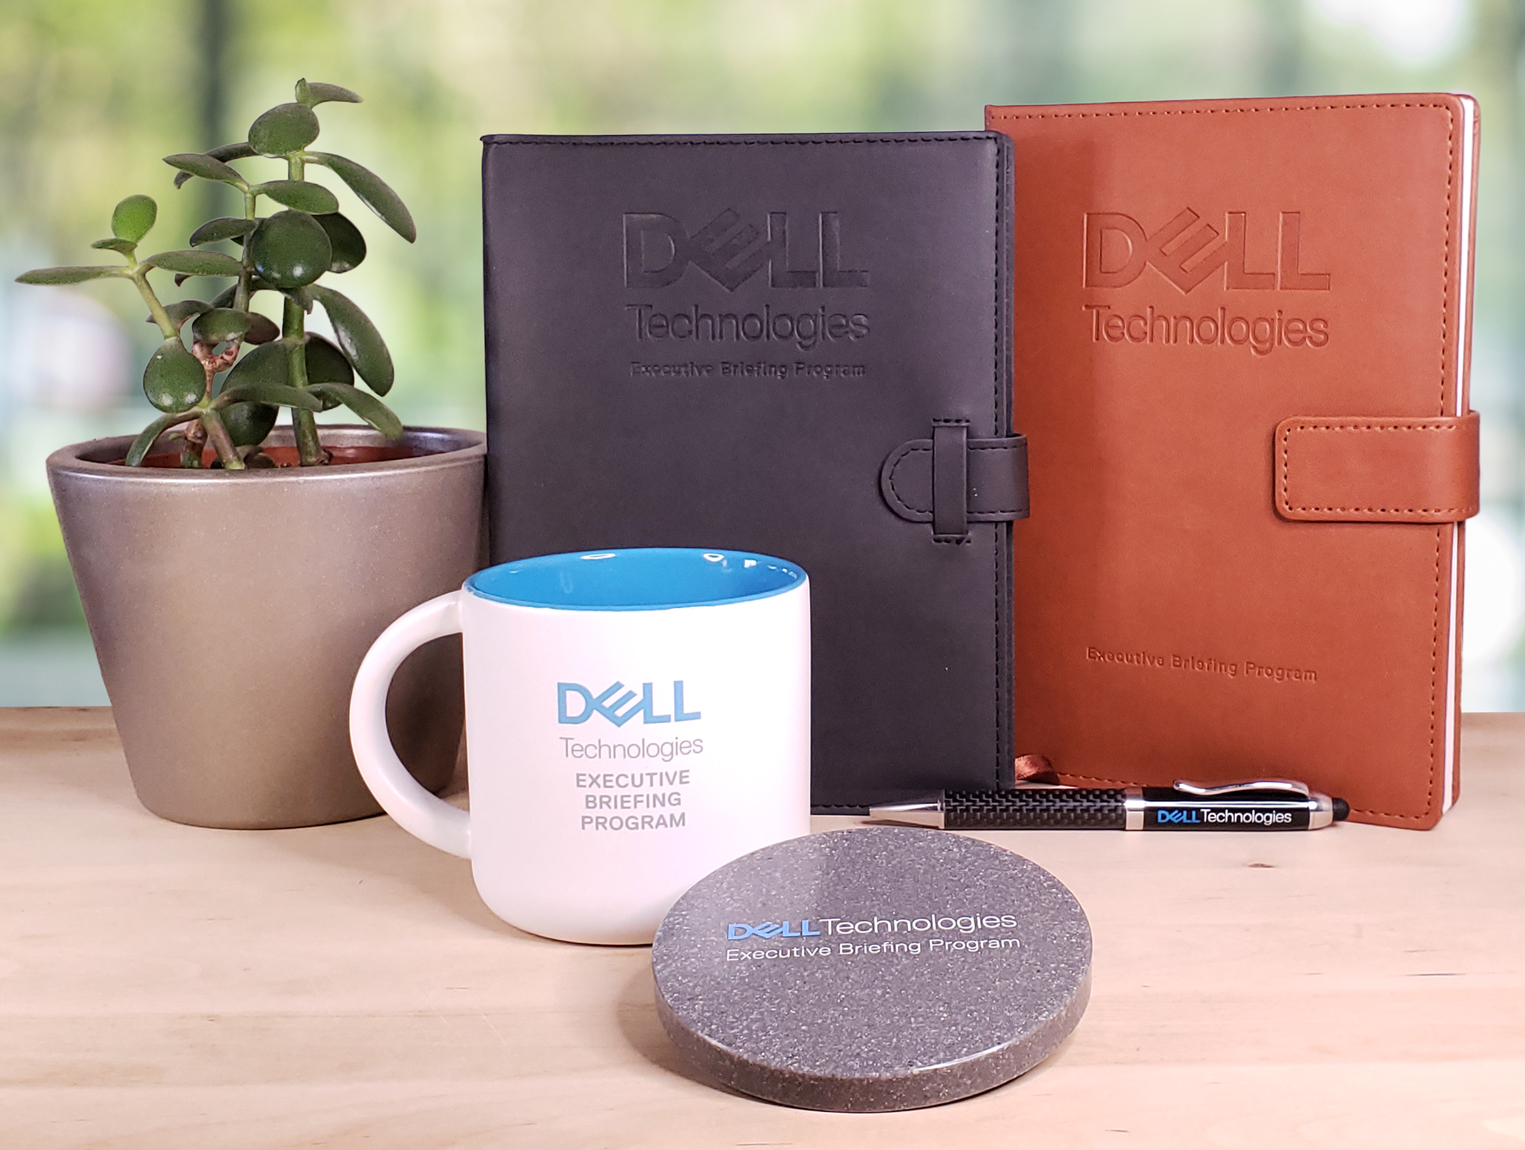 Dell Promotional Items